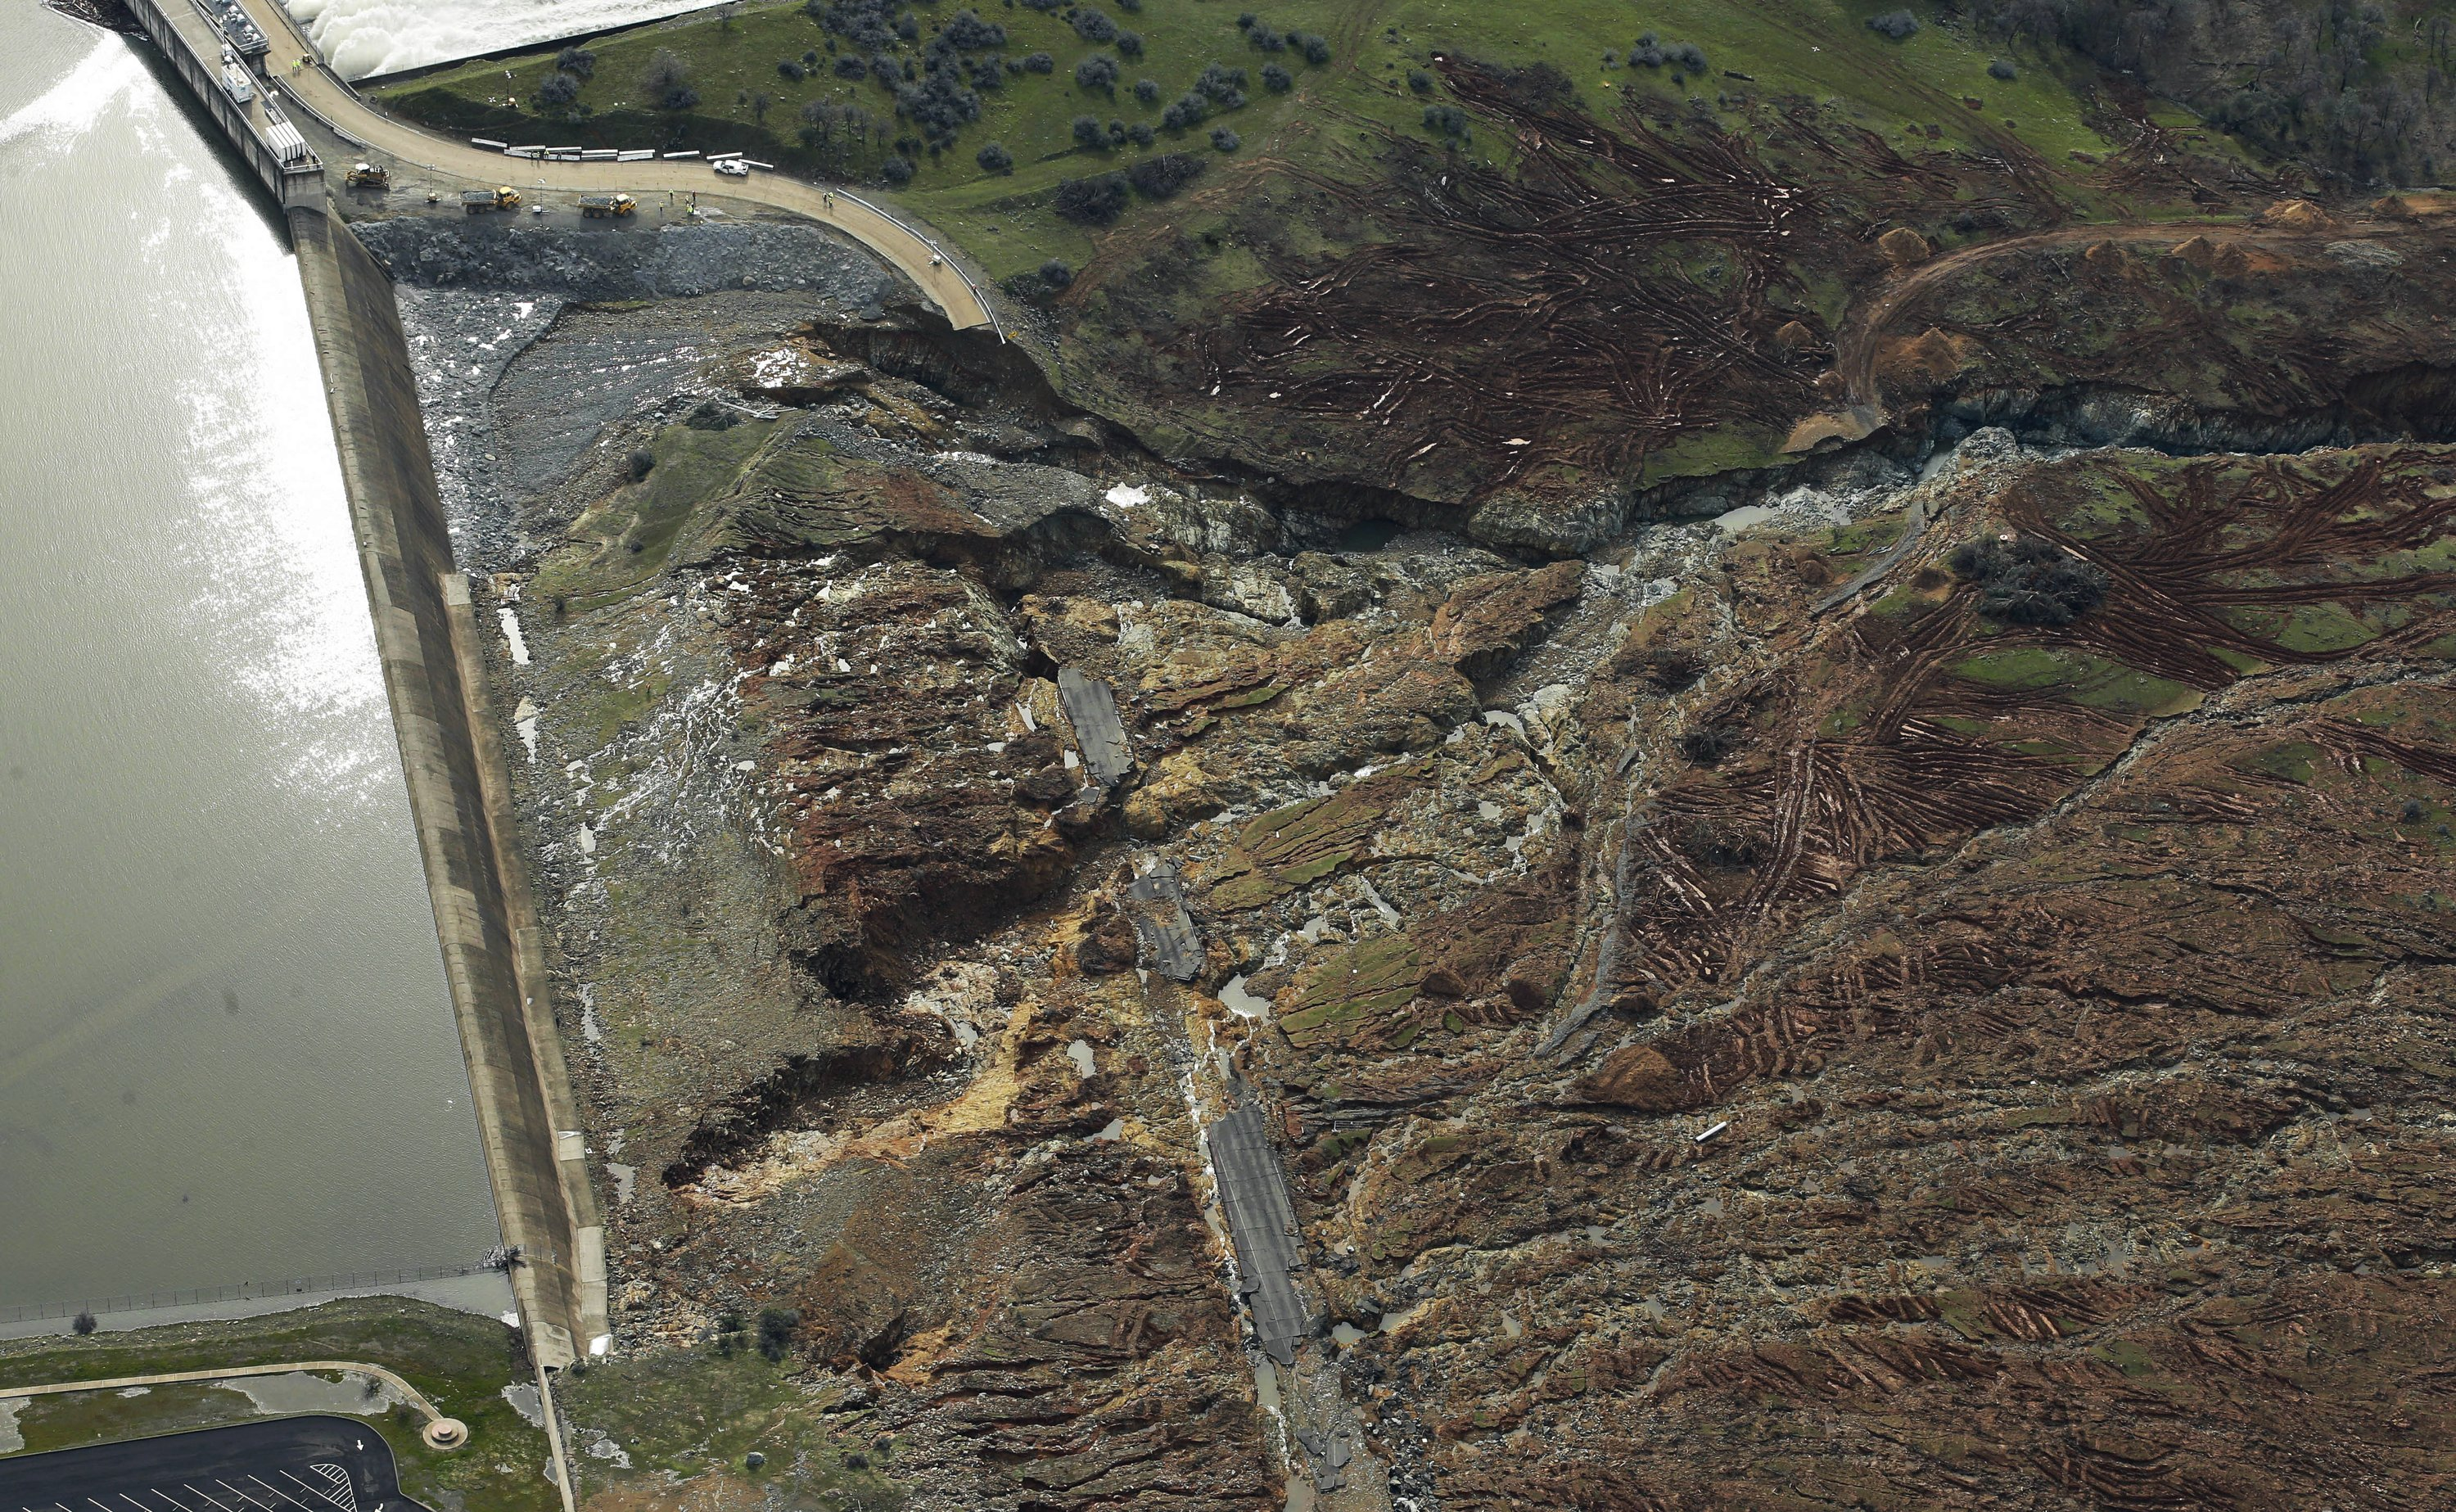 Evacuees might not go home until dam spillway is repaired